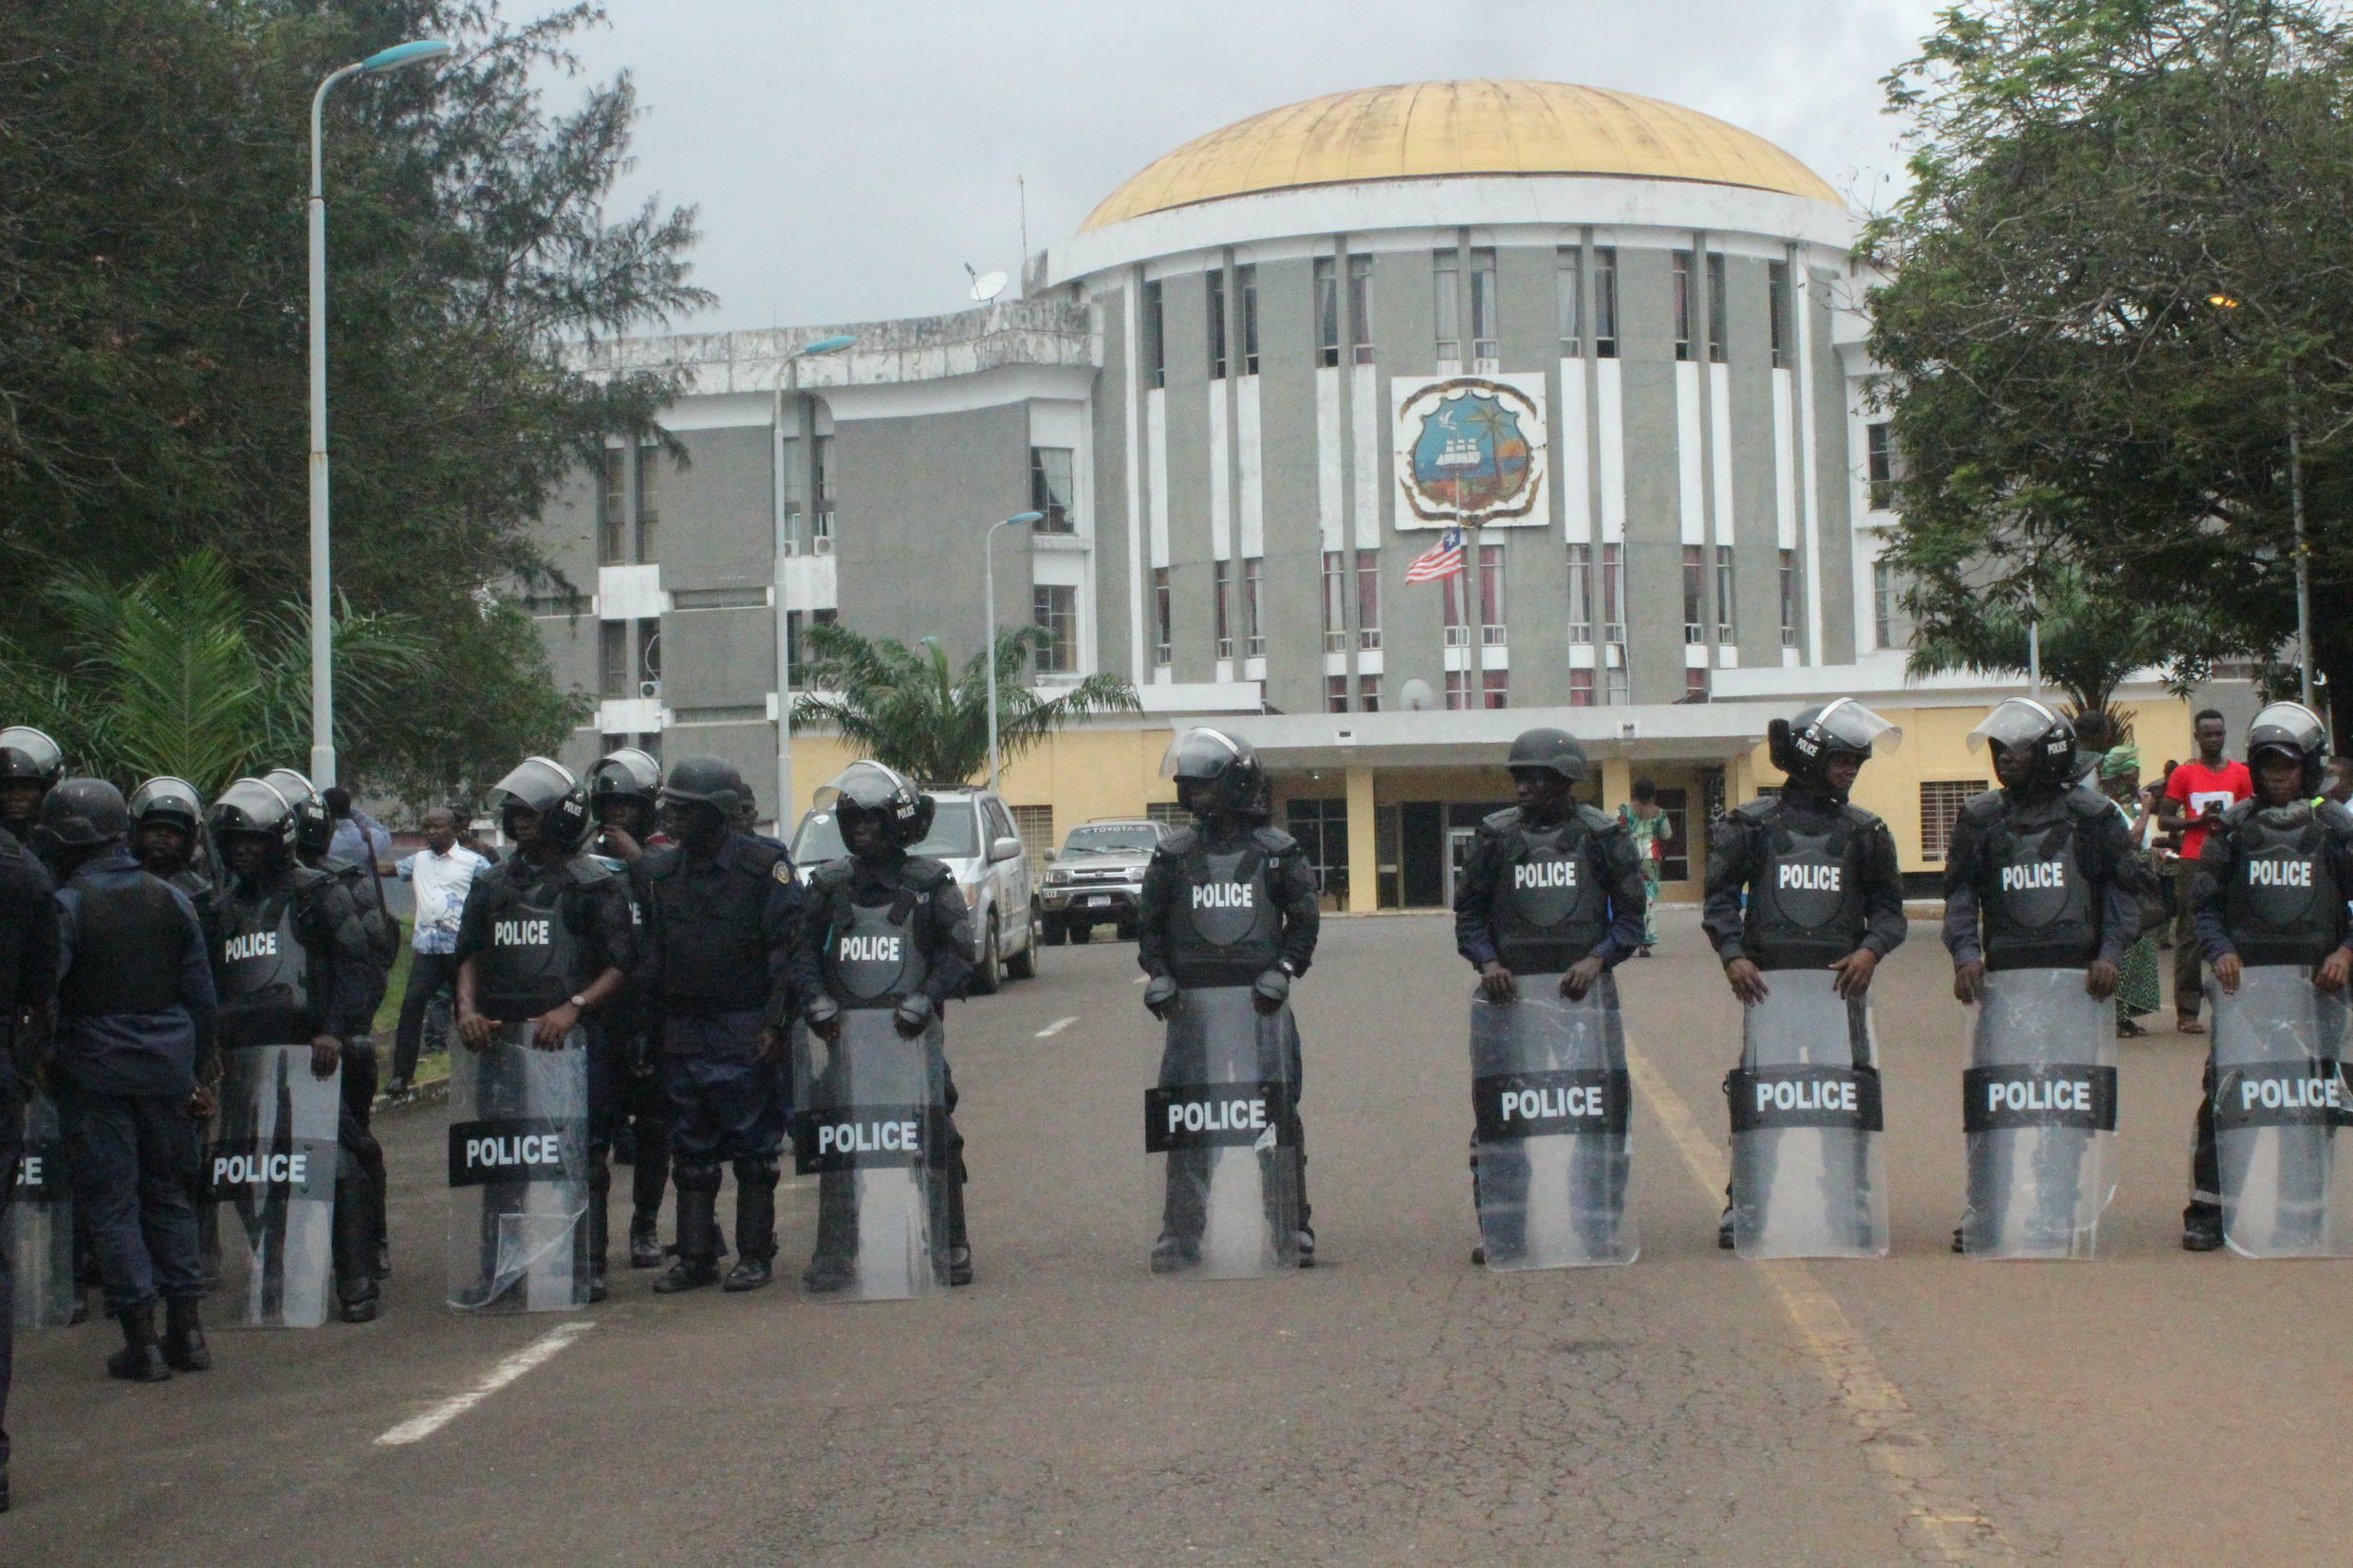 Liberian police block government buildings from the anti-rape protesters on the streets of Monrovia who want to give their petition to President George Weah.